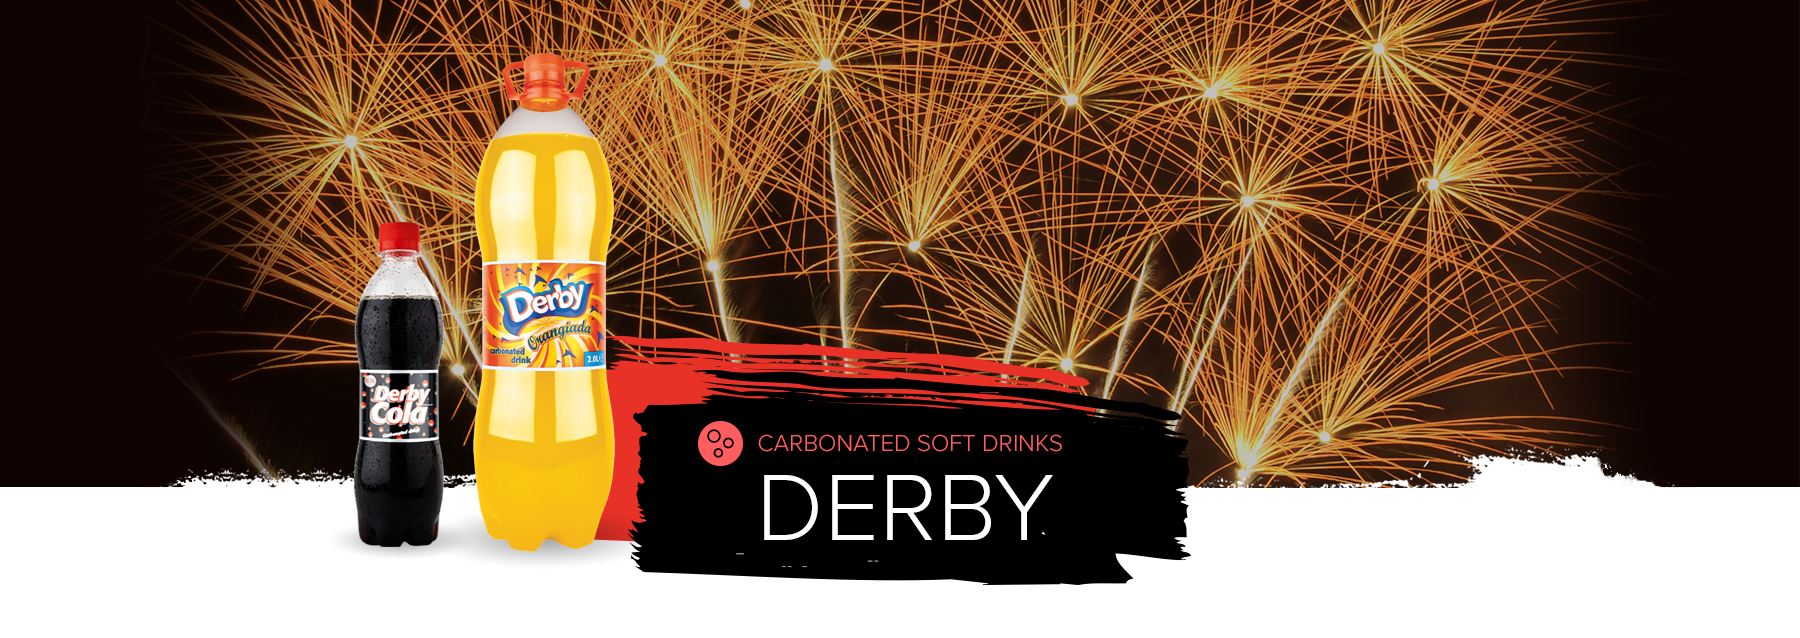 derby-carbonated